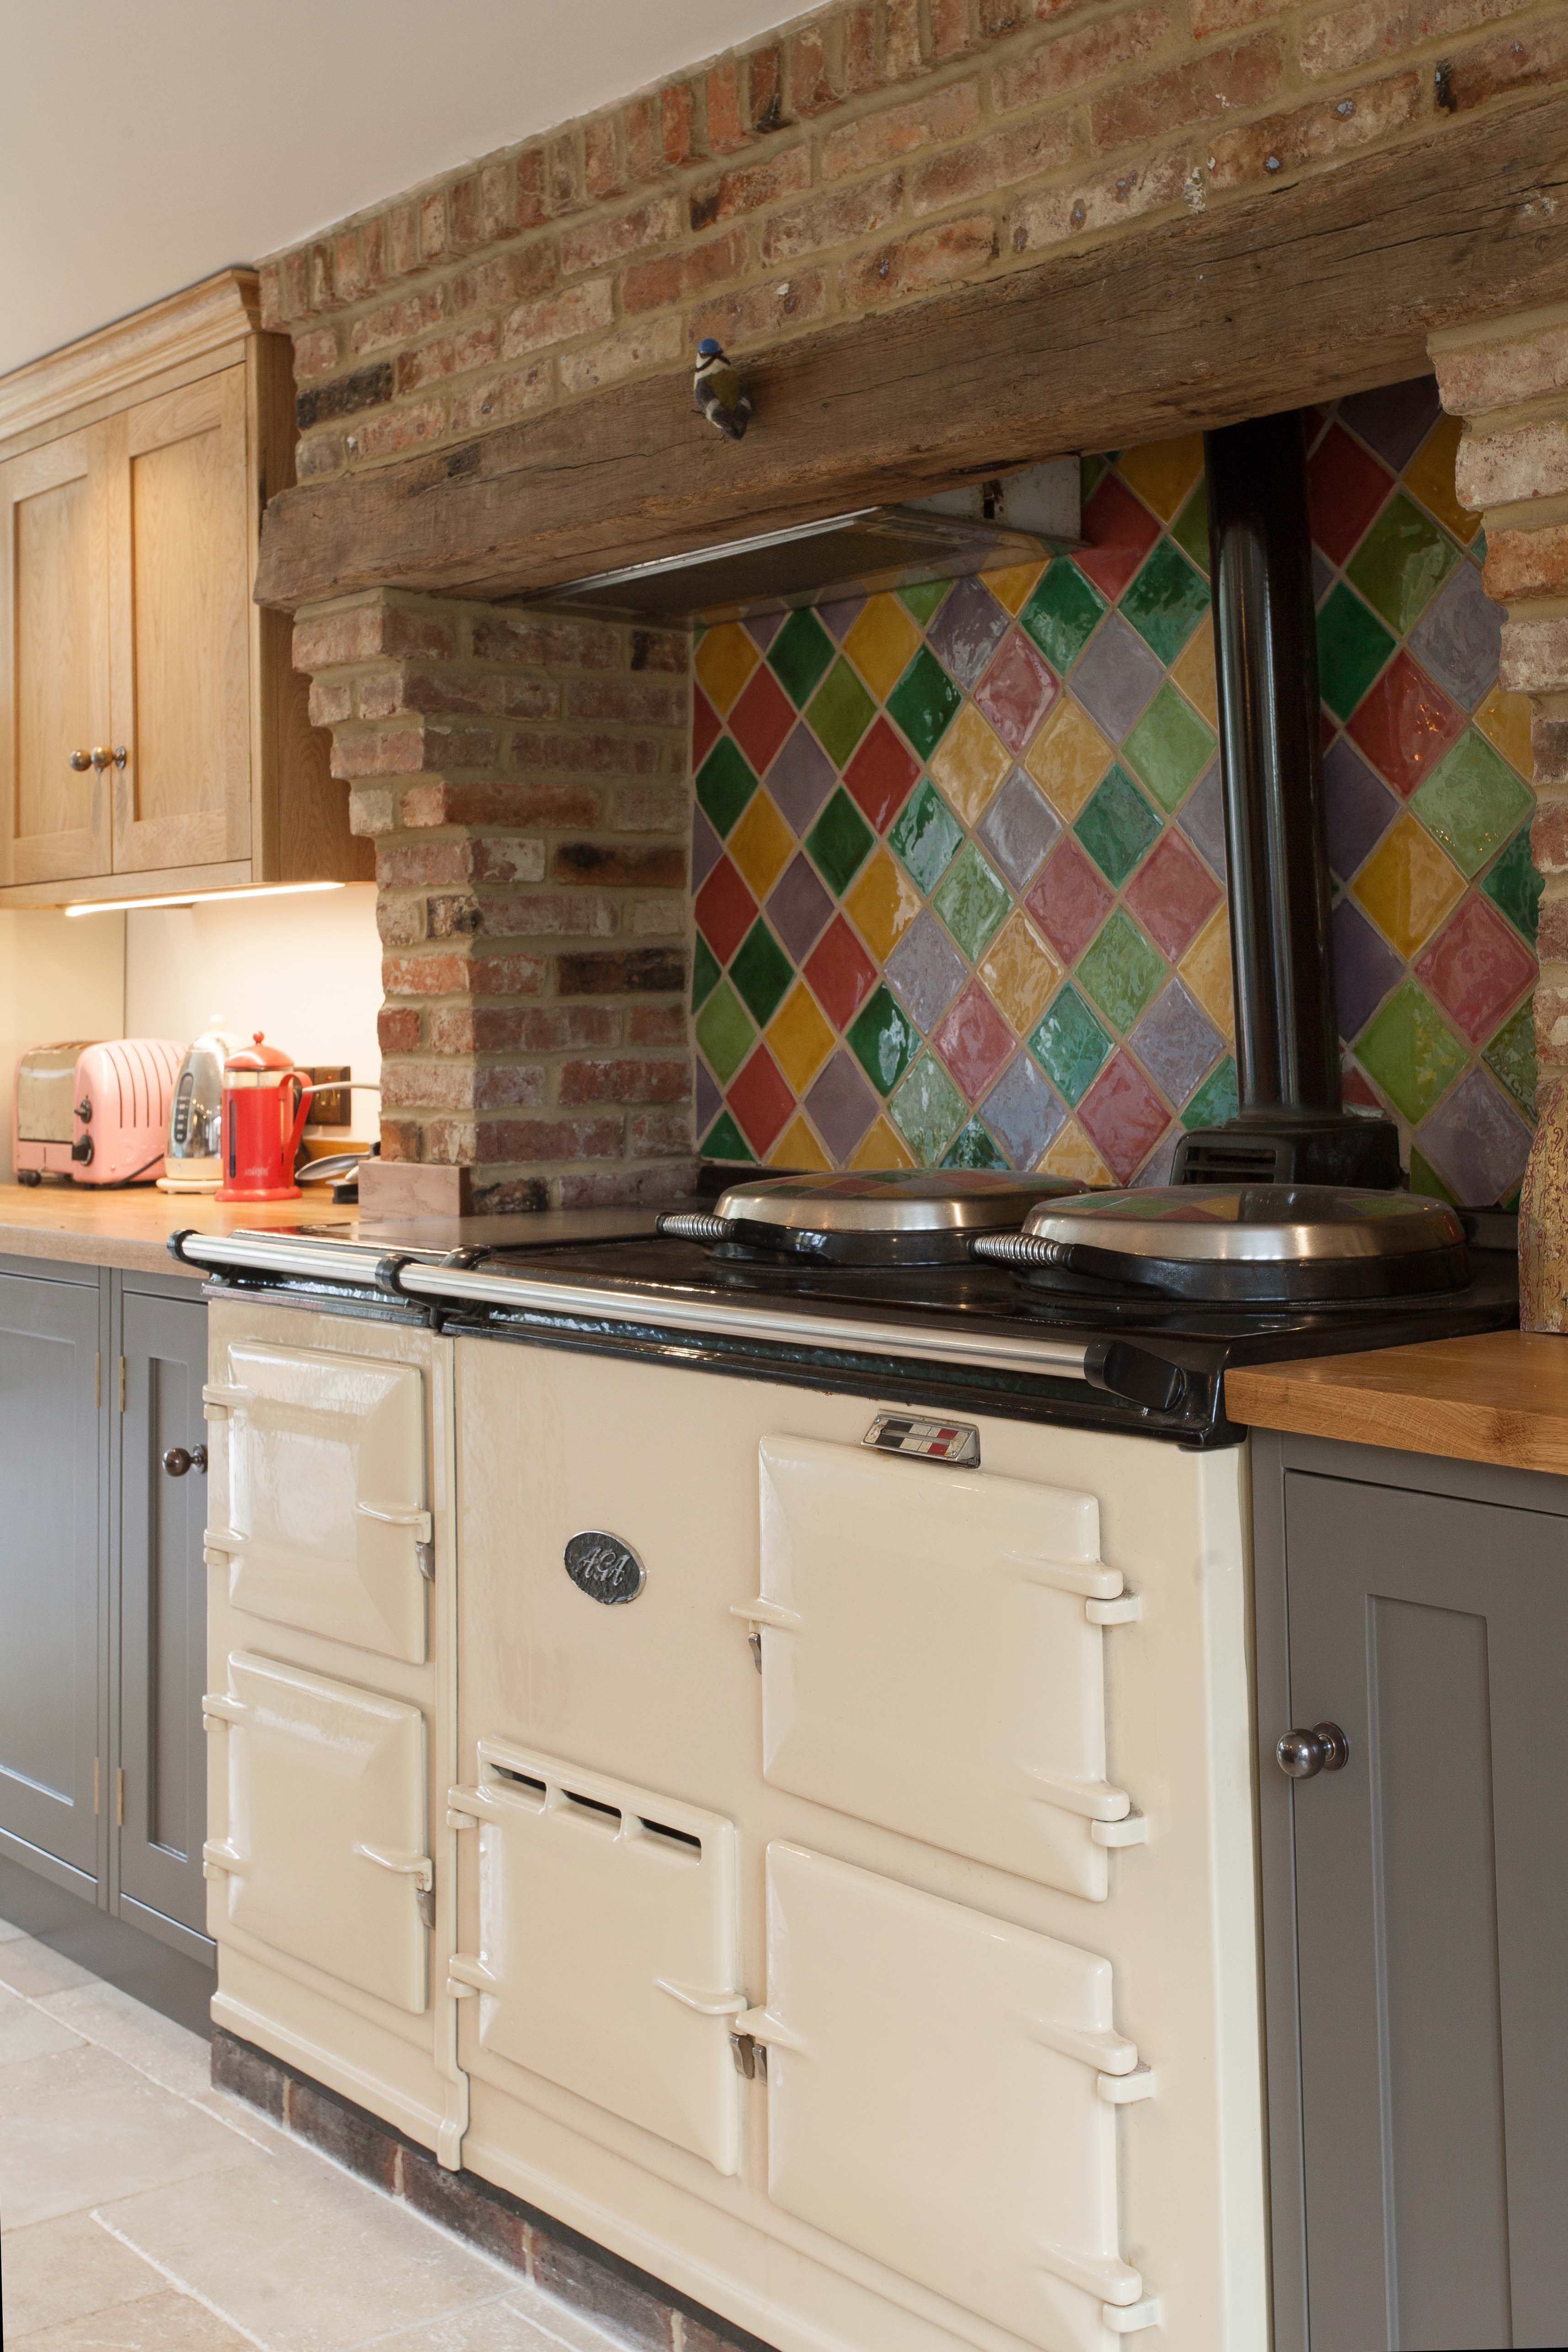 Quirky Kitchen Design With Aga Bishop S Waltham Anthony Edwards